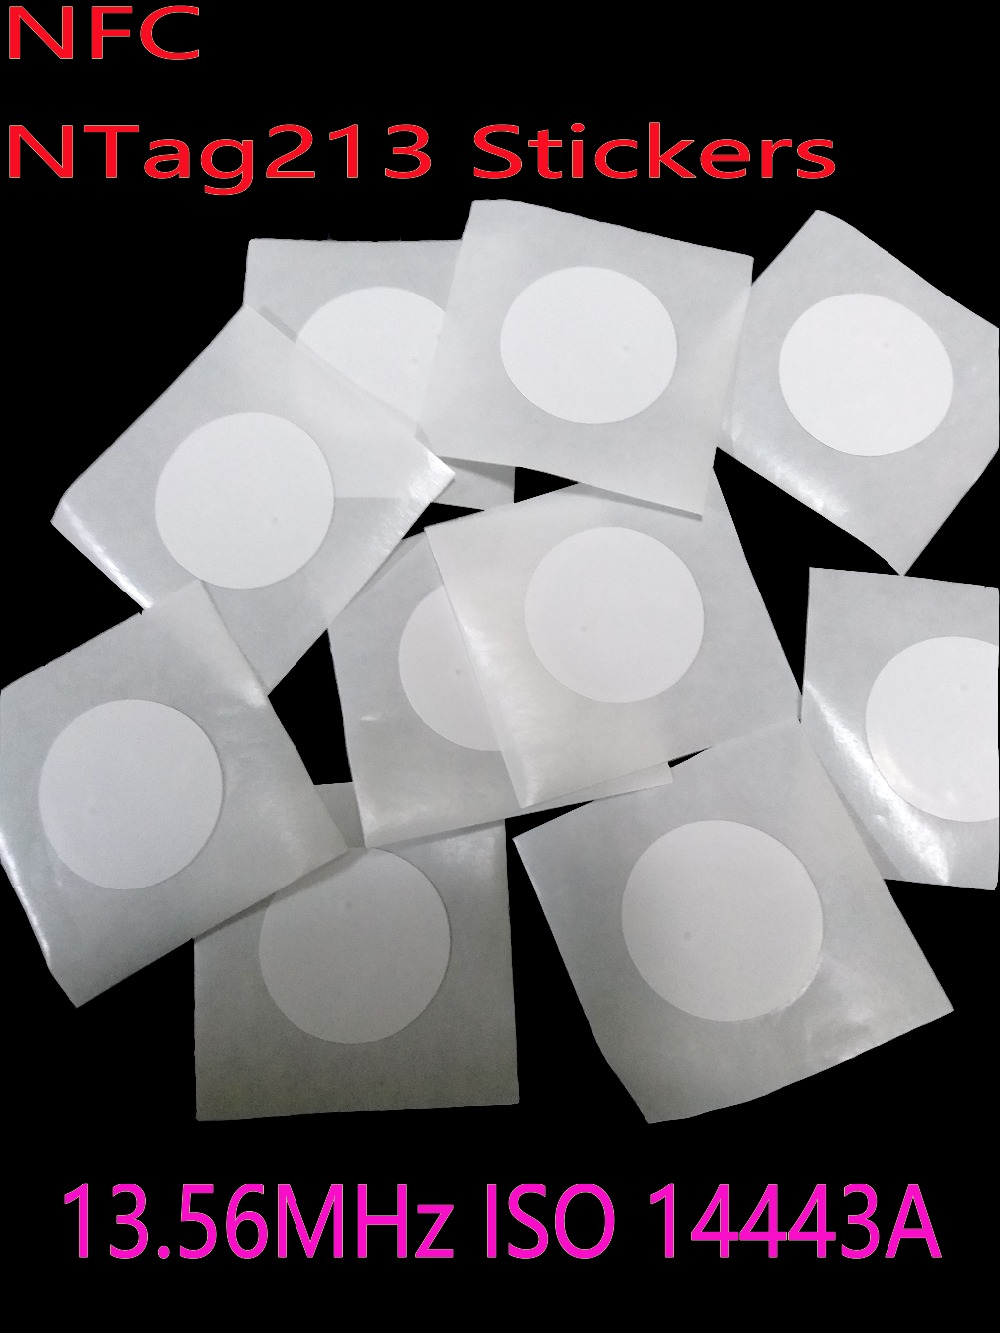 100pcs/Lot NFC Tag  Ntag213 ISO14443A 13.56MHz NFC Sticker Ntag 213 RFID NFC Tags Stickers Adhesive Labels For All NFC Phone